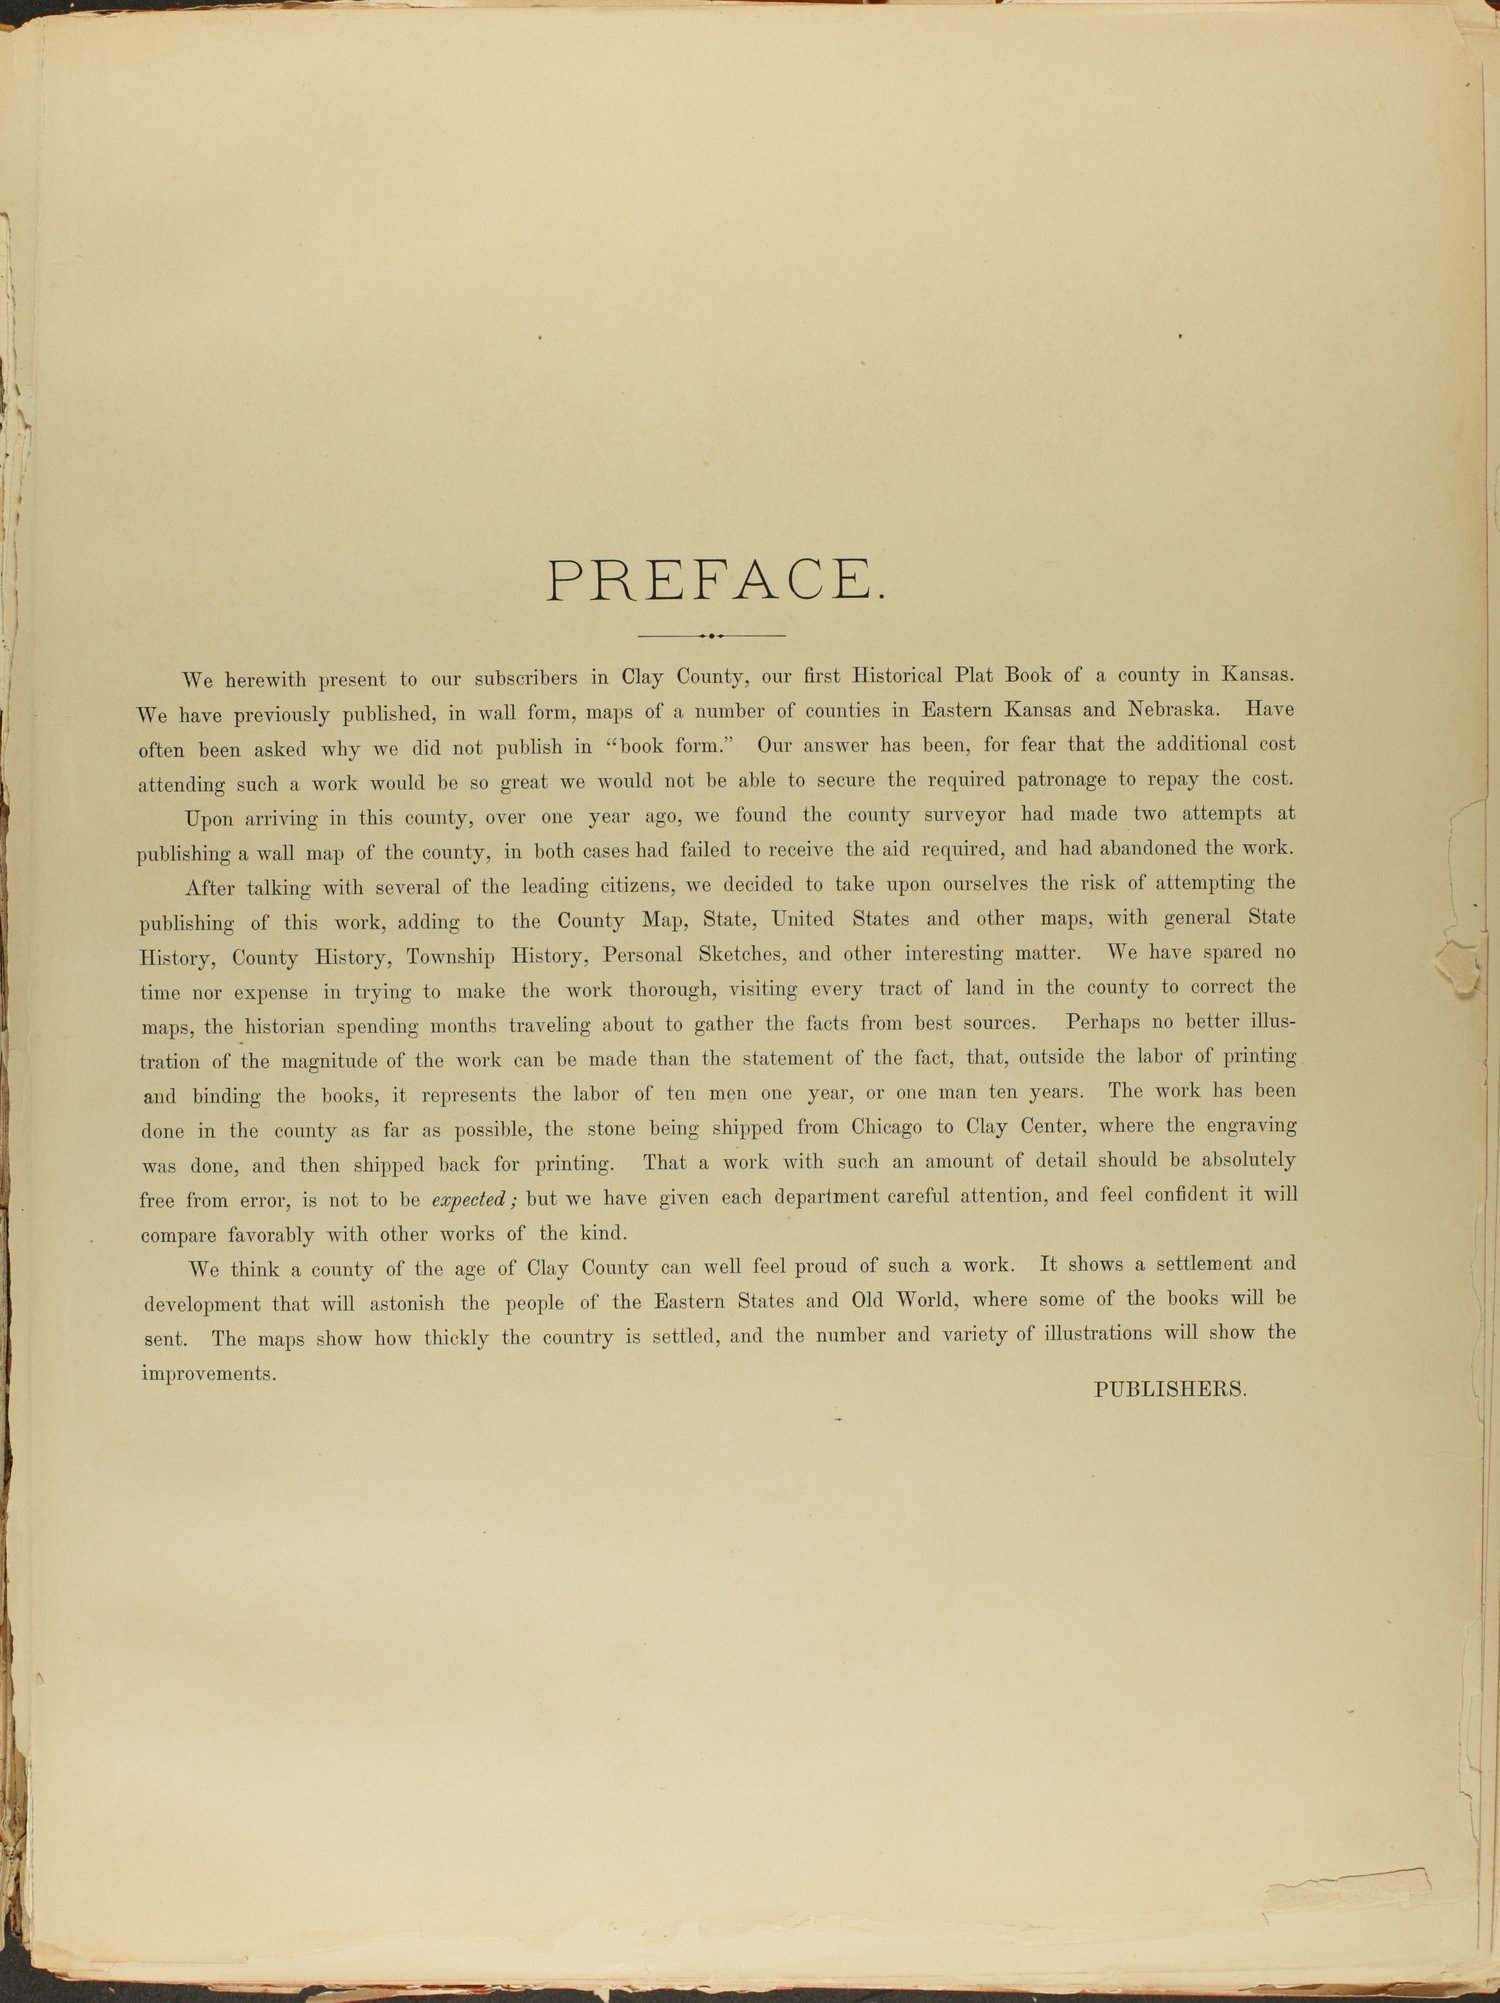 Historical plat book of Clay County, Kansas - Preface